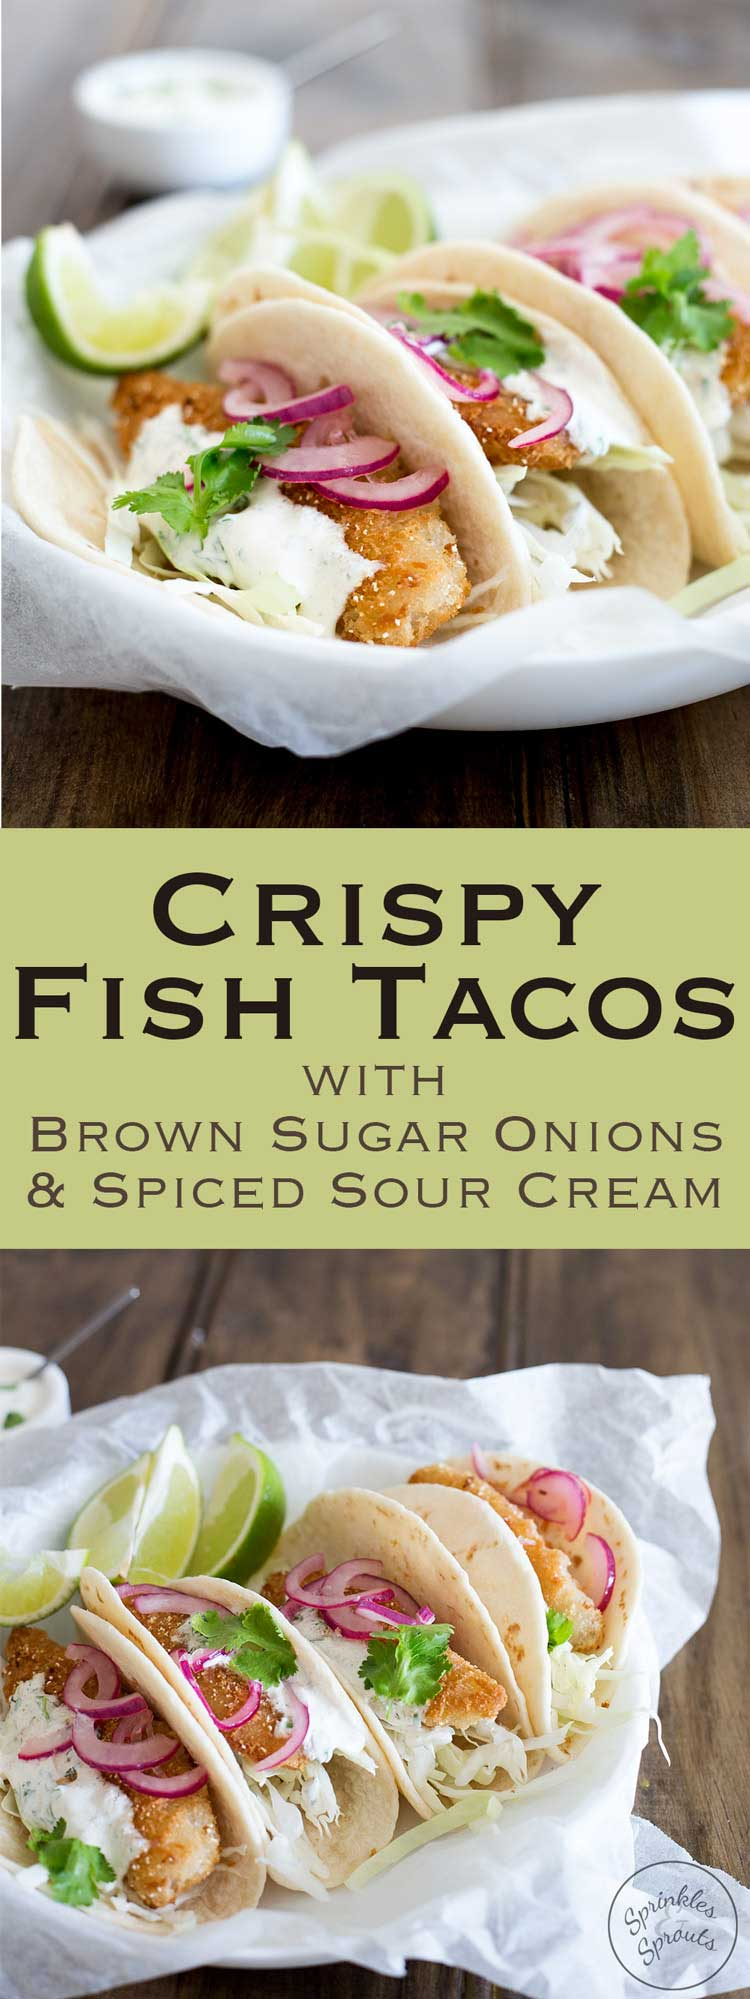 These fish tacos are taco heaven! Soft flour tortillas are filled with crispy fish, sweet and sour brown sugar onions and an amazing creamy taco sauce. From Sprinkles and Sprouts